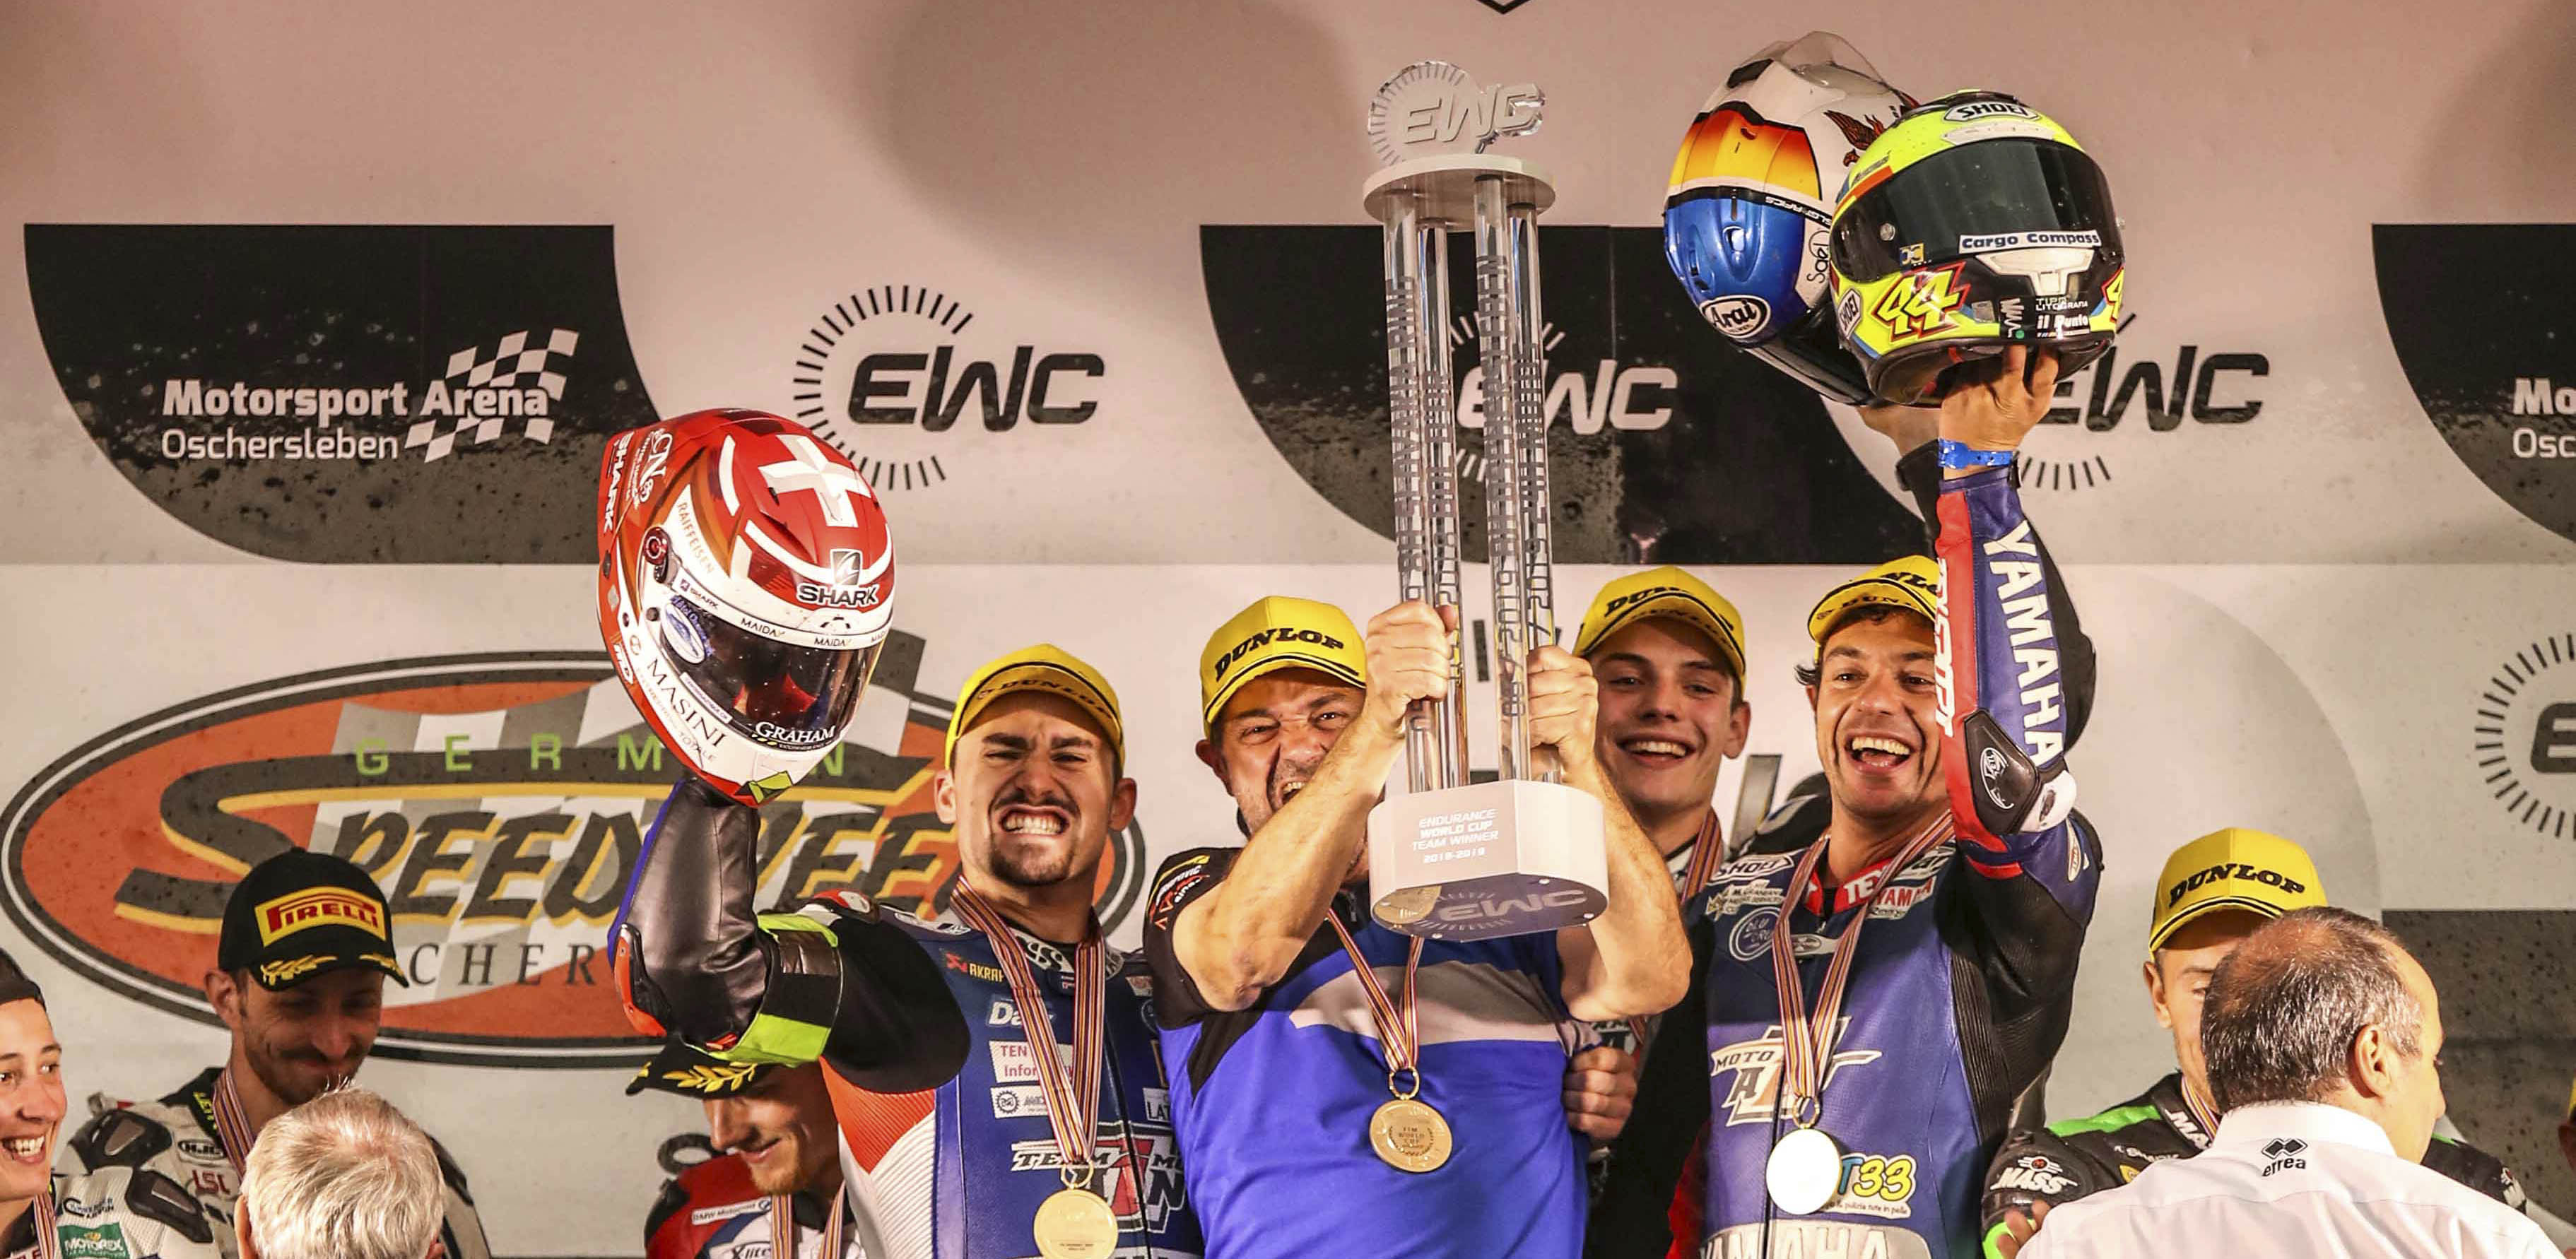 Moto Ain win FIM Endurance World Cup